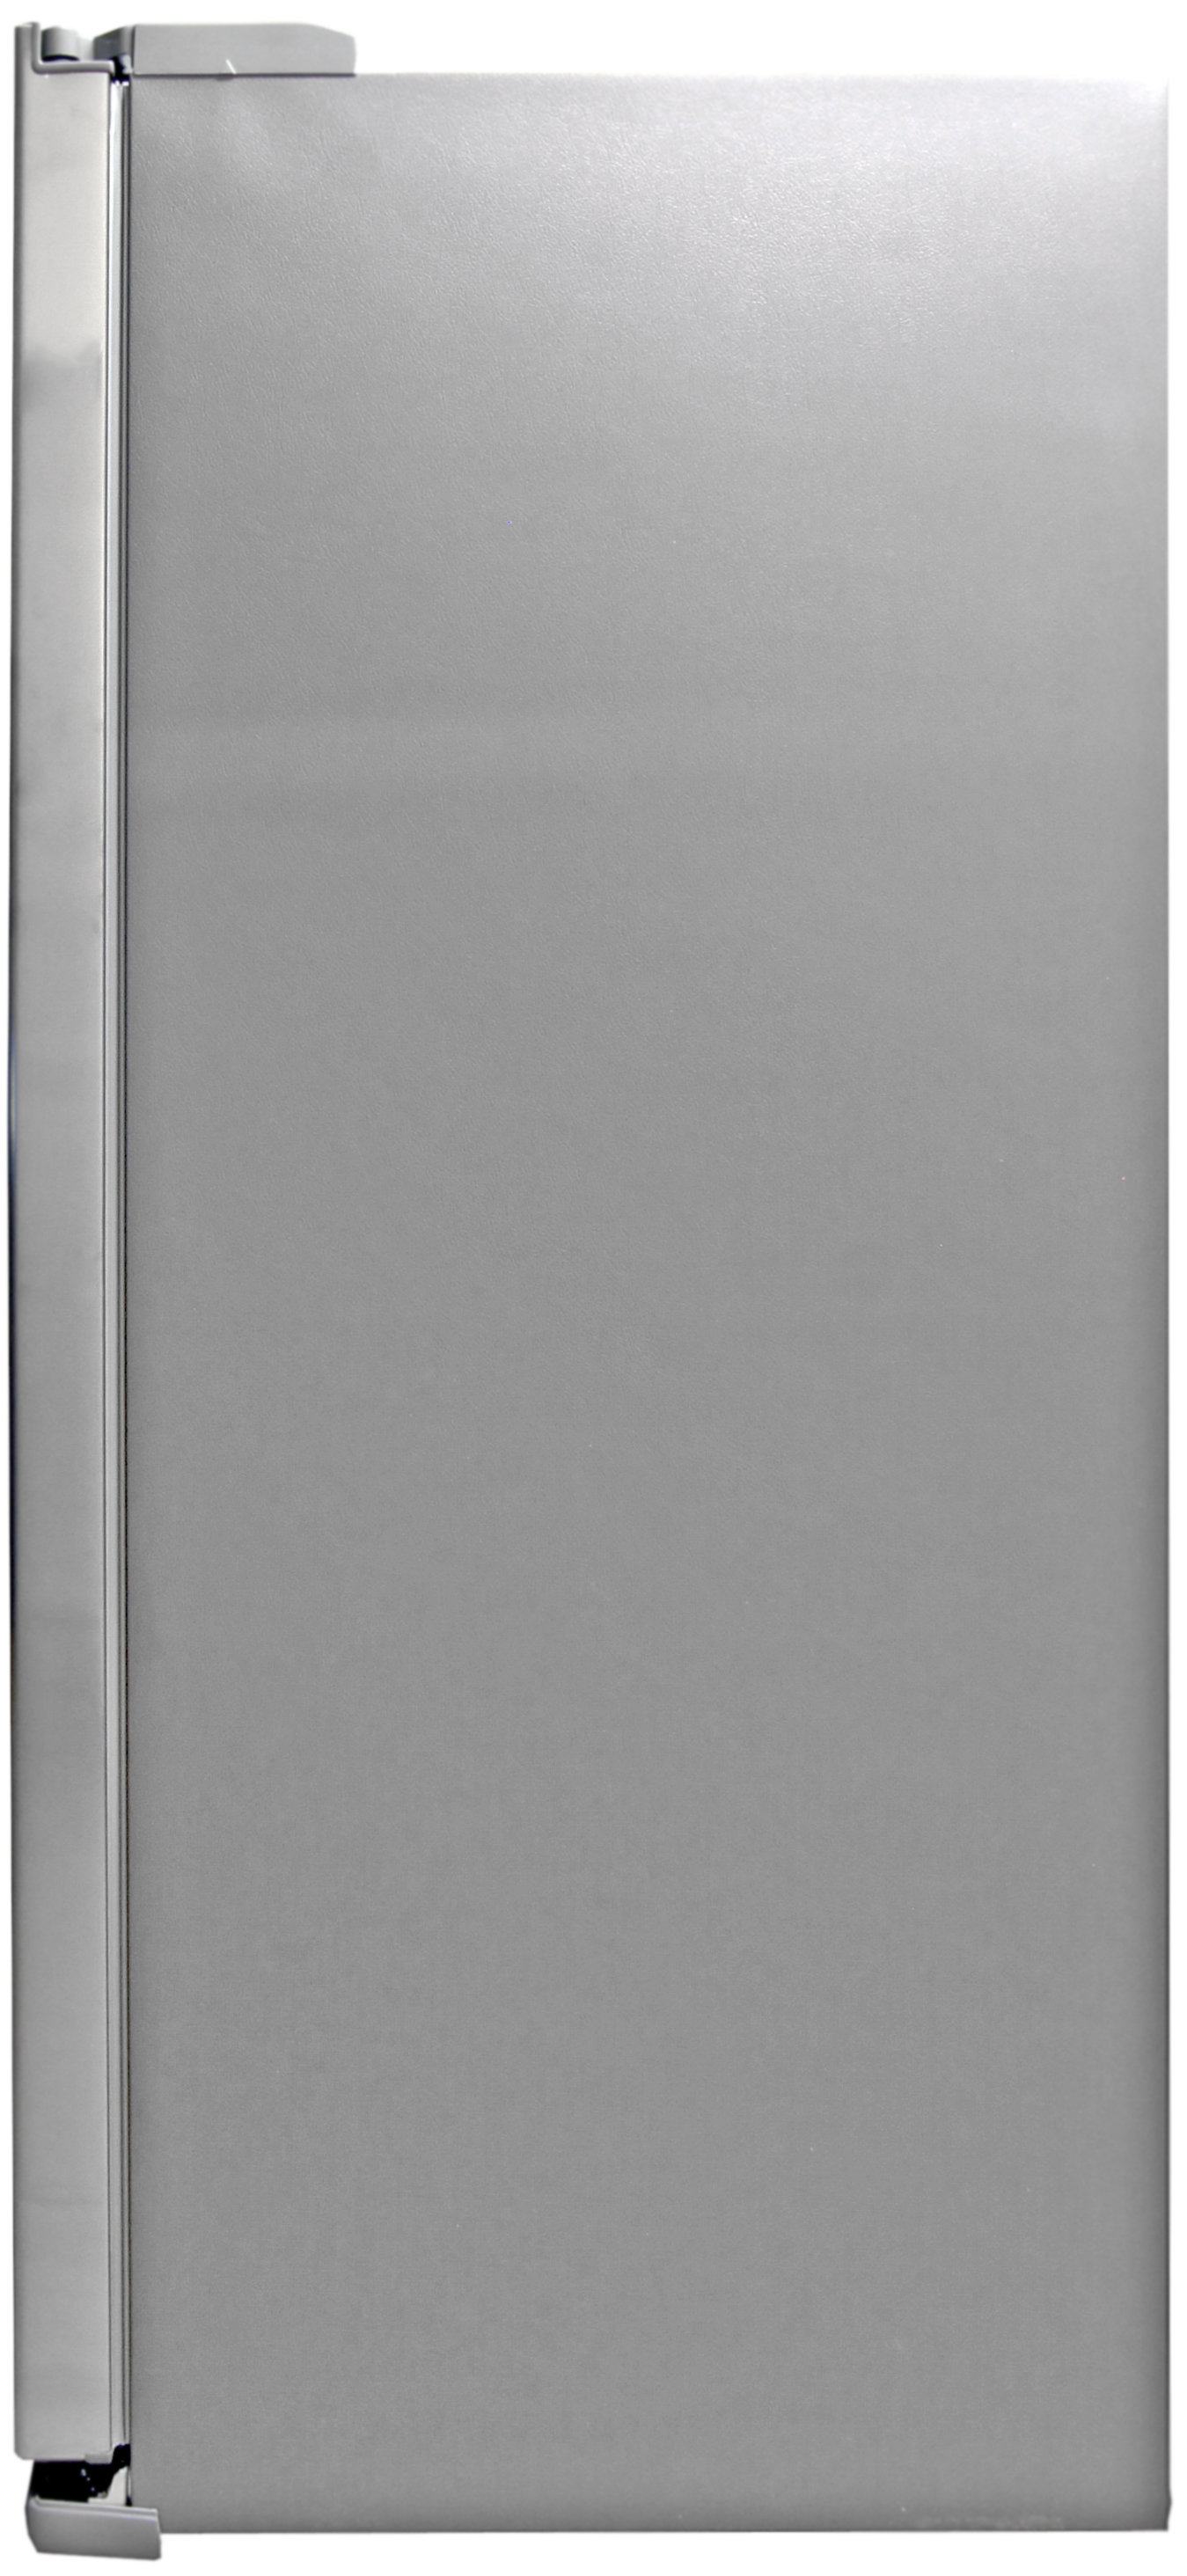 The grey matte sides of the Samsung RS25H5121 complement its stainless front.